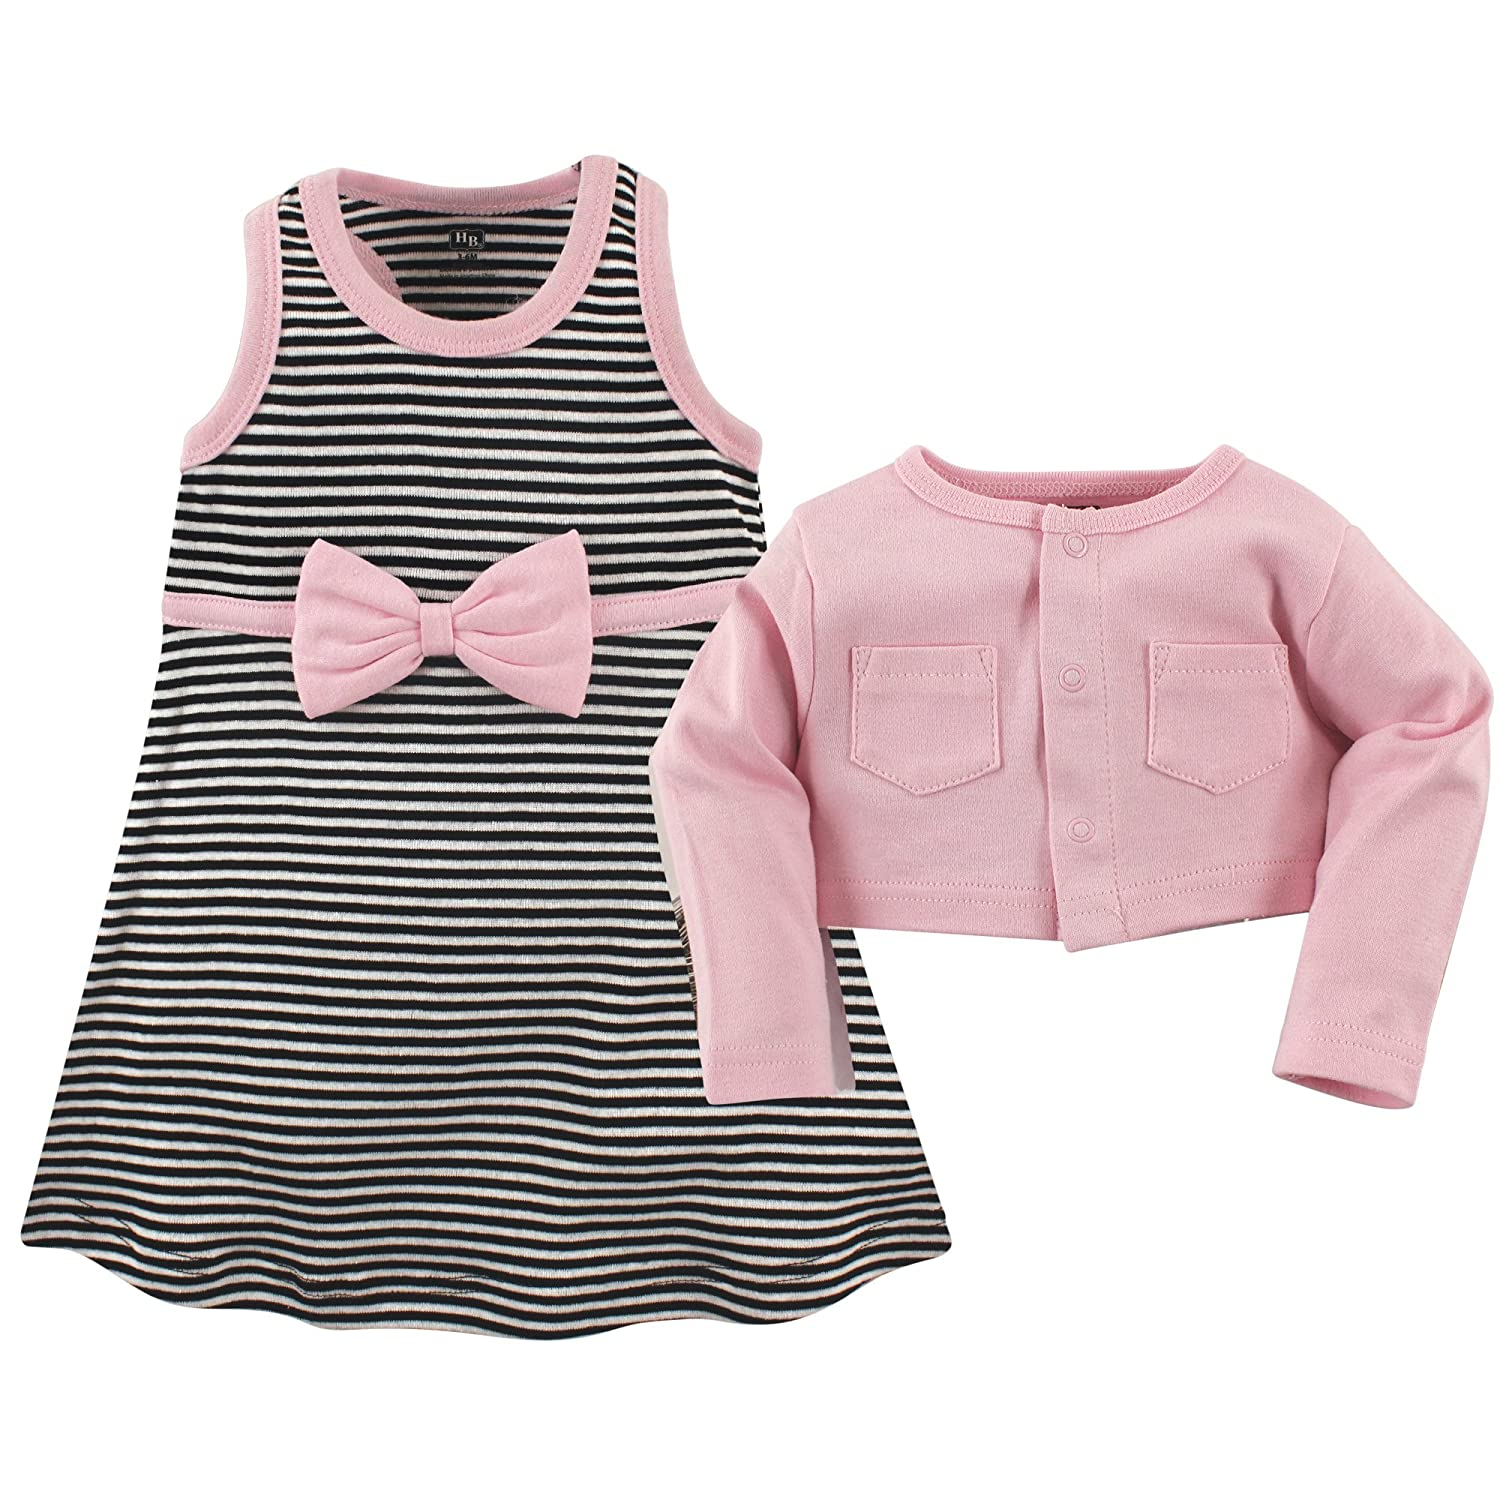 fb1f9bc02b79d Hudson Baby Baby Girls' Cropped Cardigan & Racerback Dress